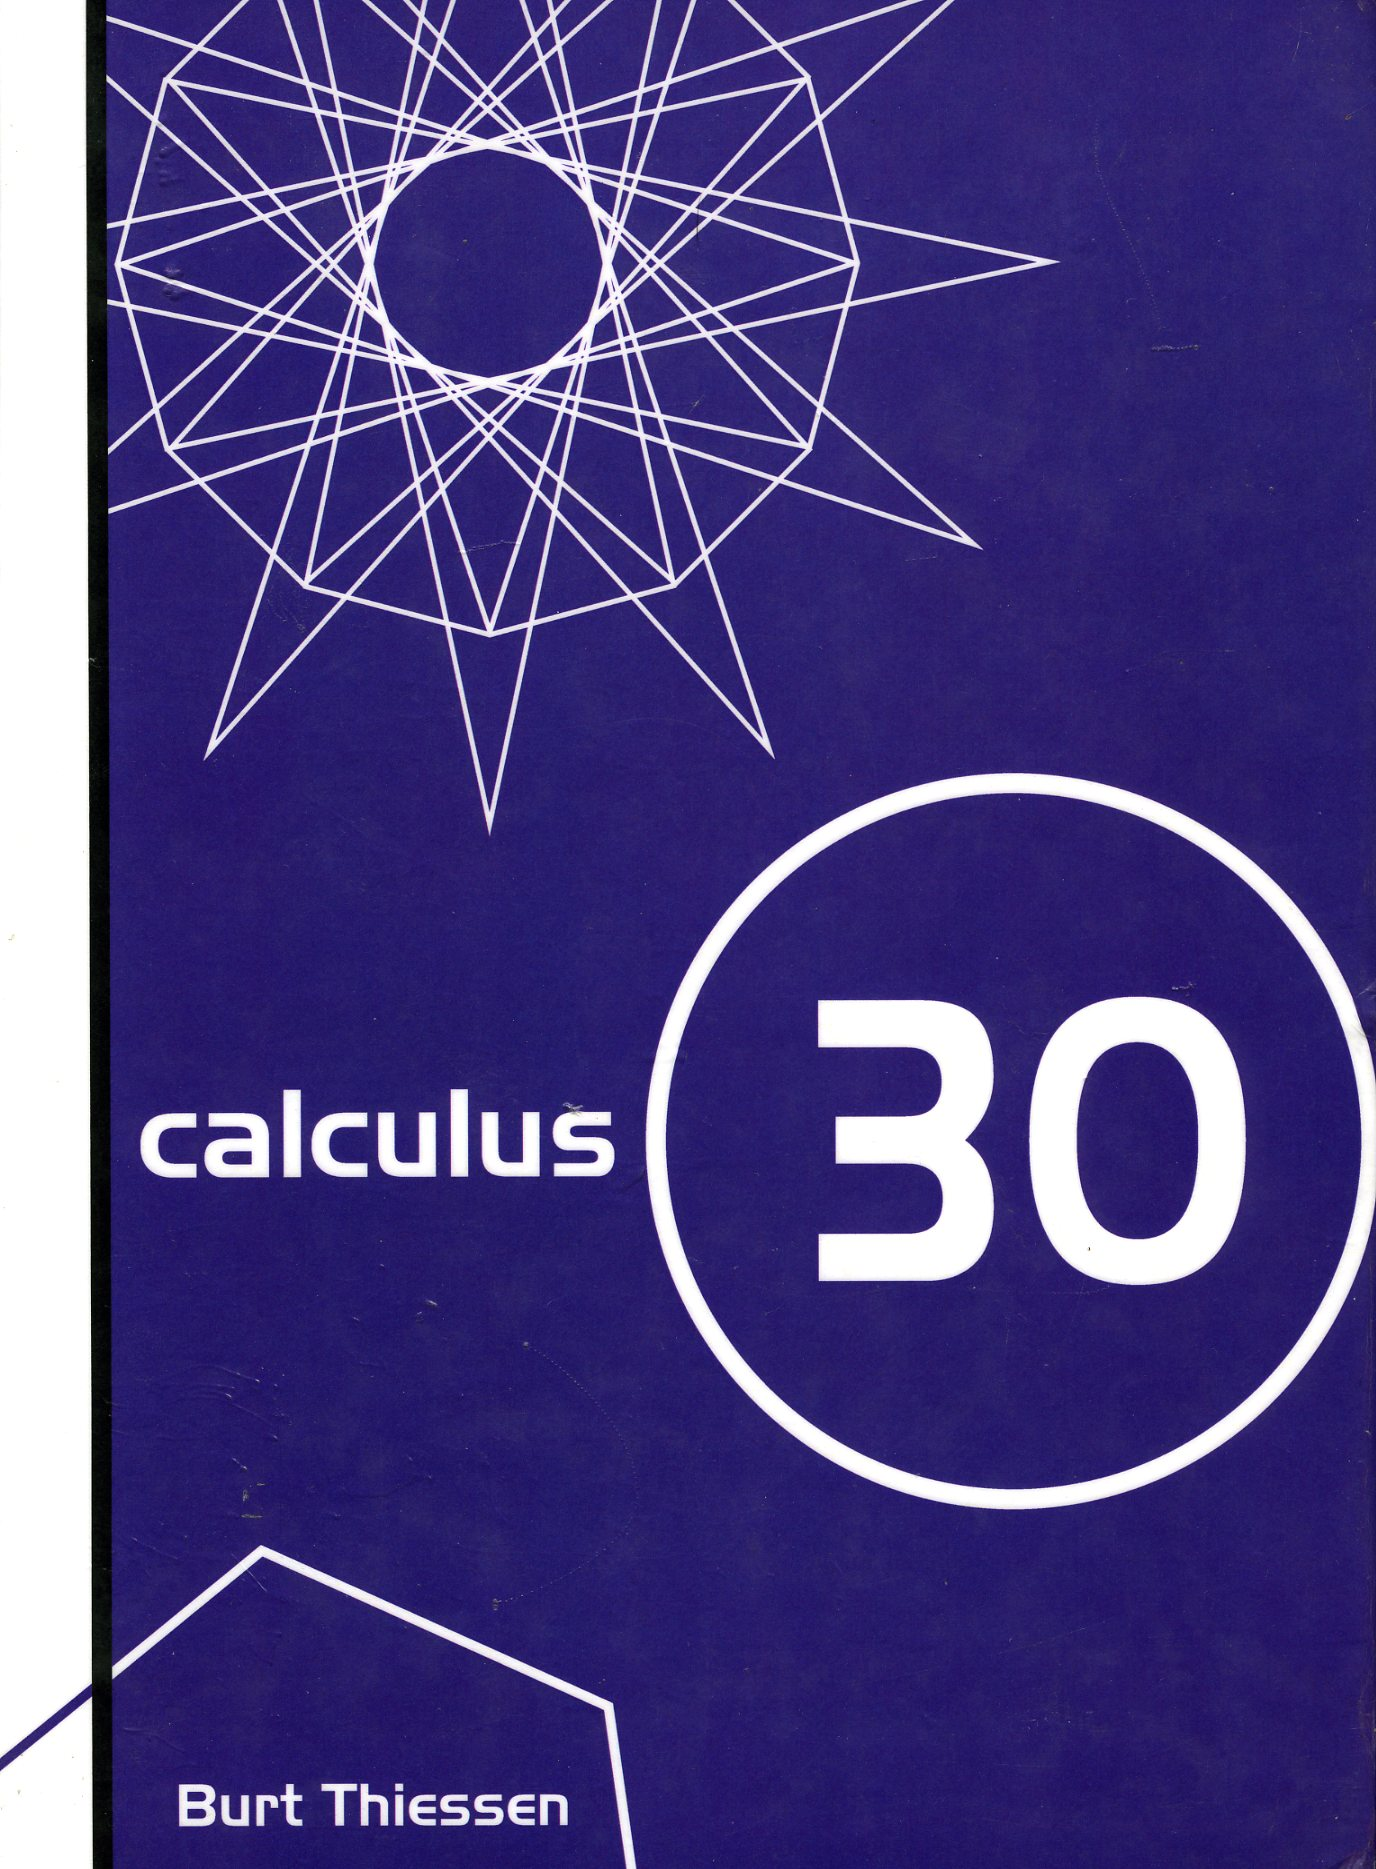 Calculus 30 - Online Learning Centre